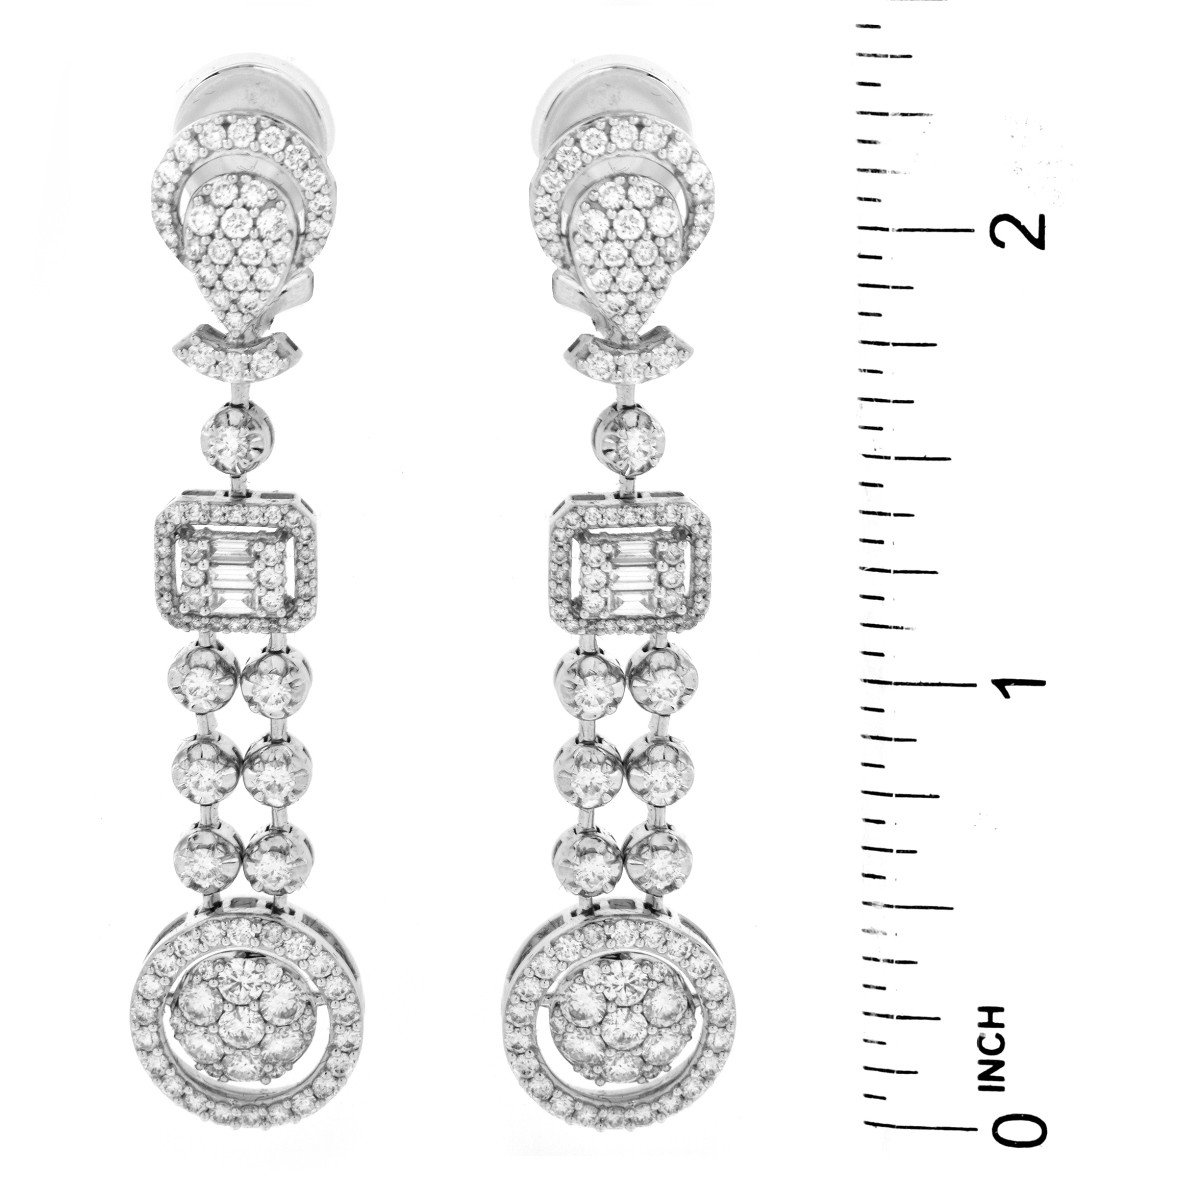 4.0ct TW Diamond and 18K Gold Earrings